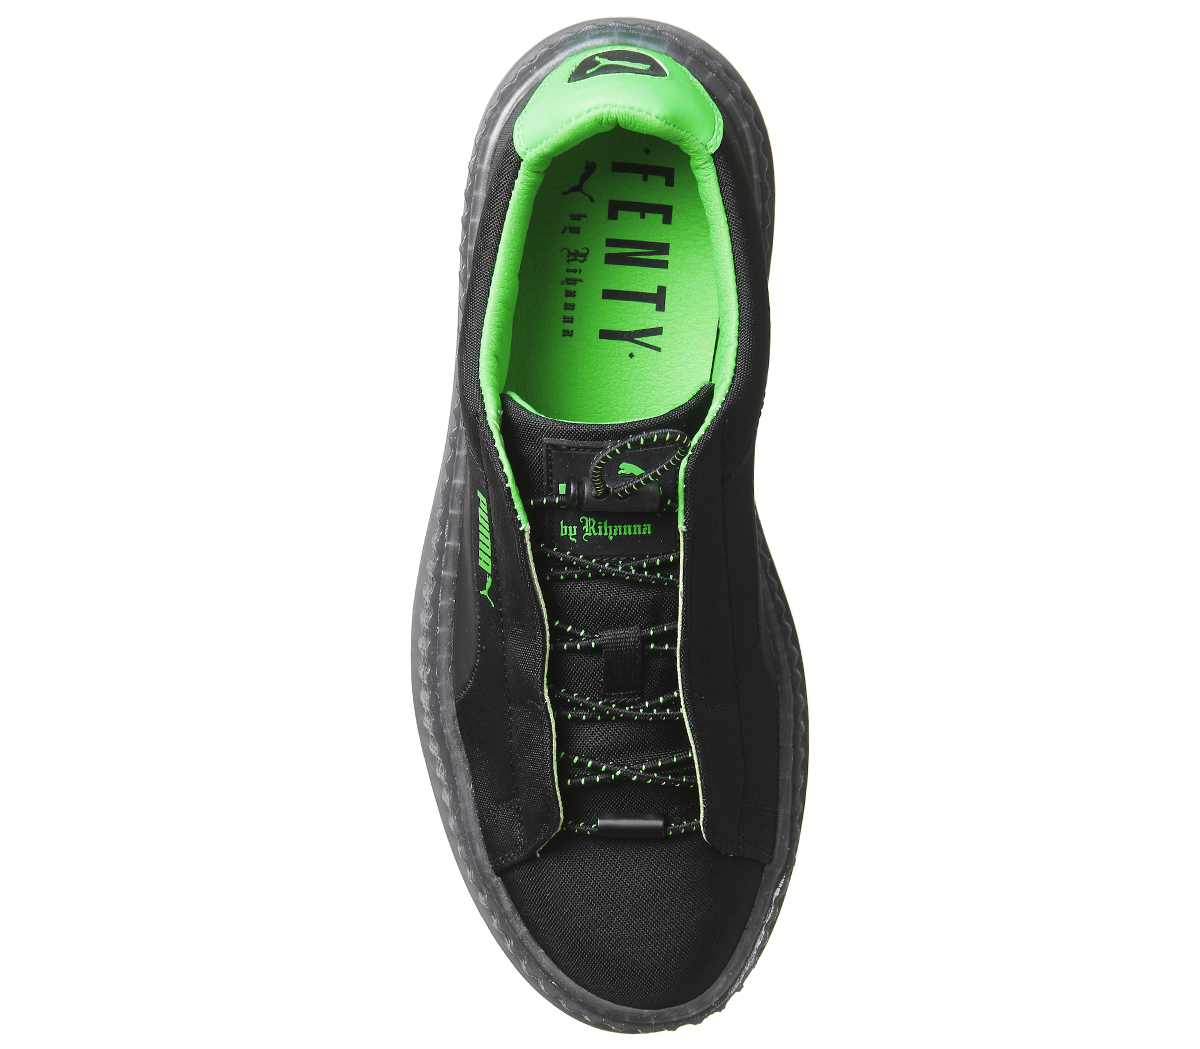 7712e4367f0 Womens Puma Fenty Cleated Creepers Surf Black Green Trainers Shoes ...